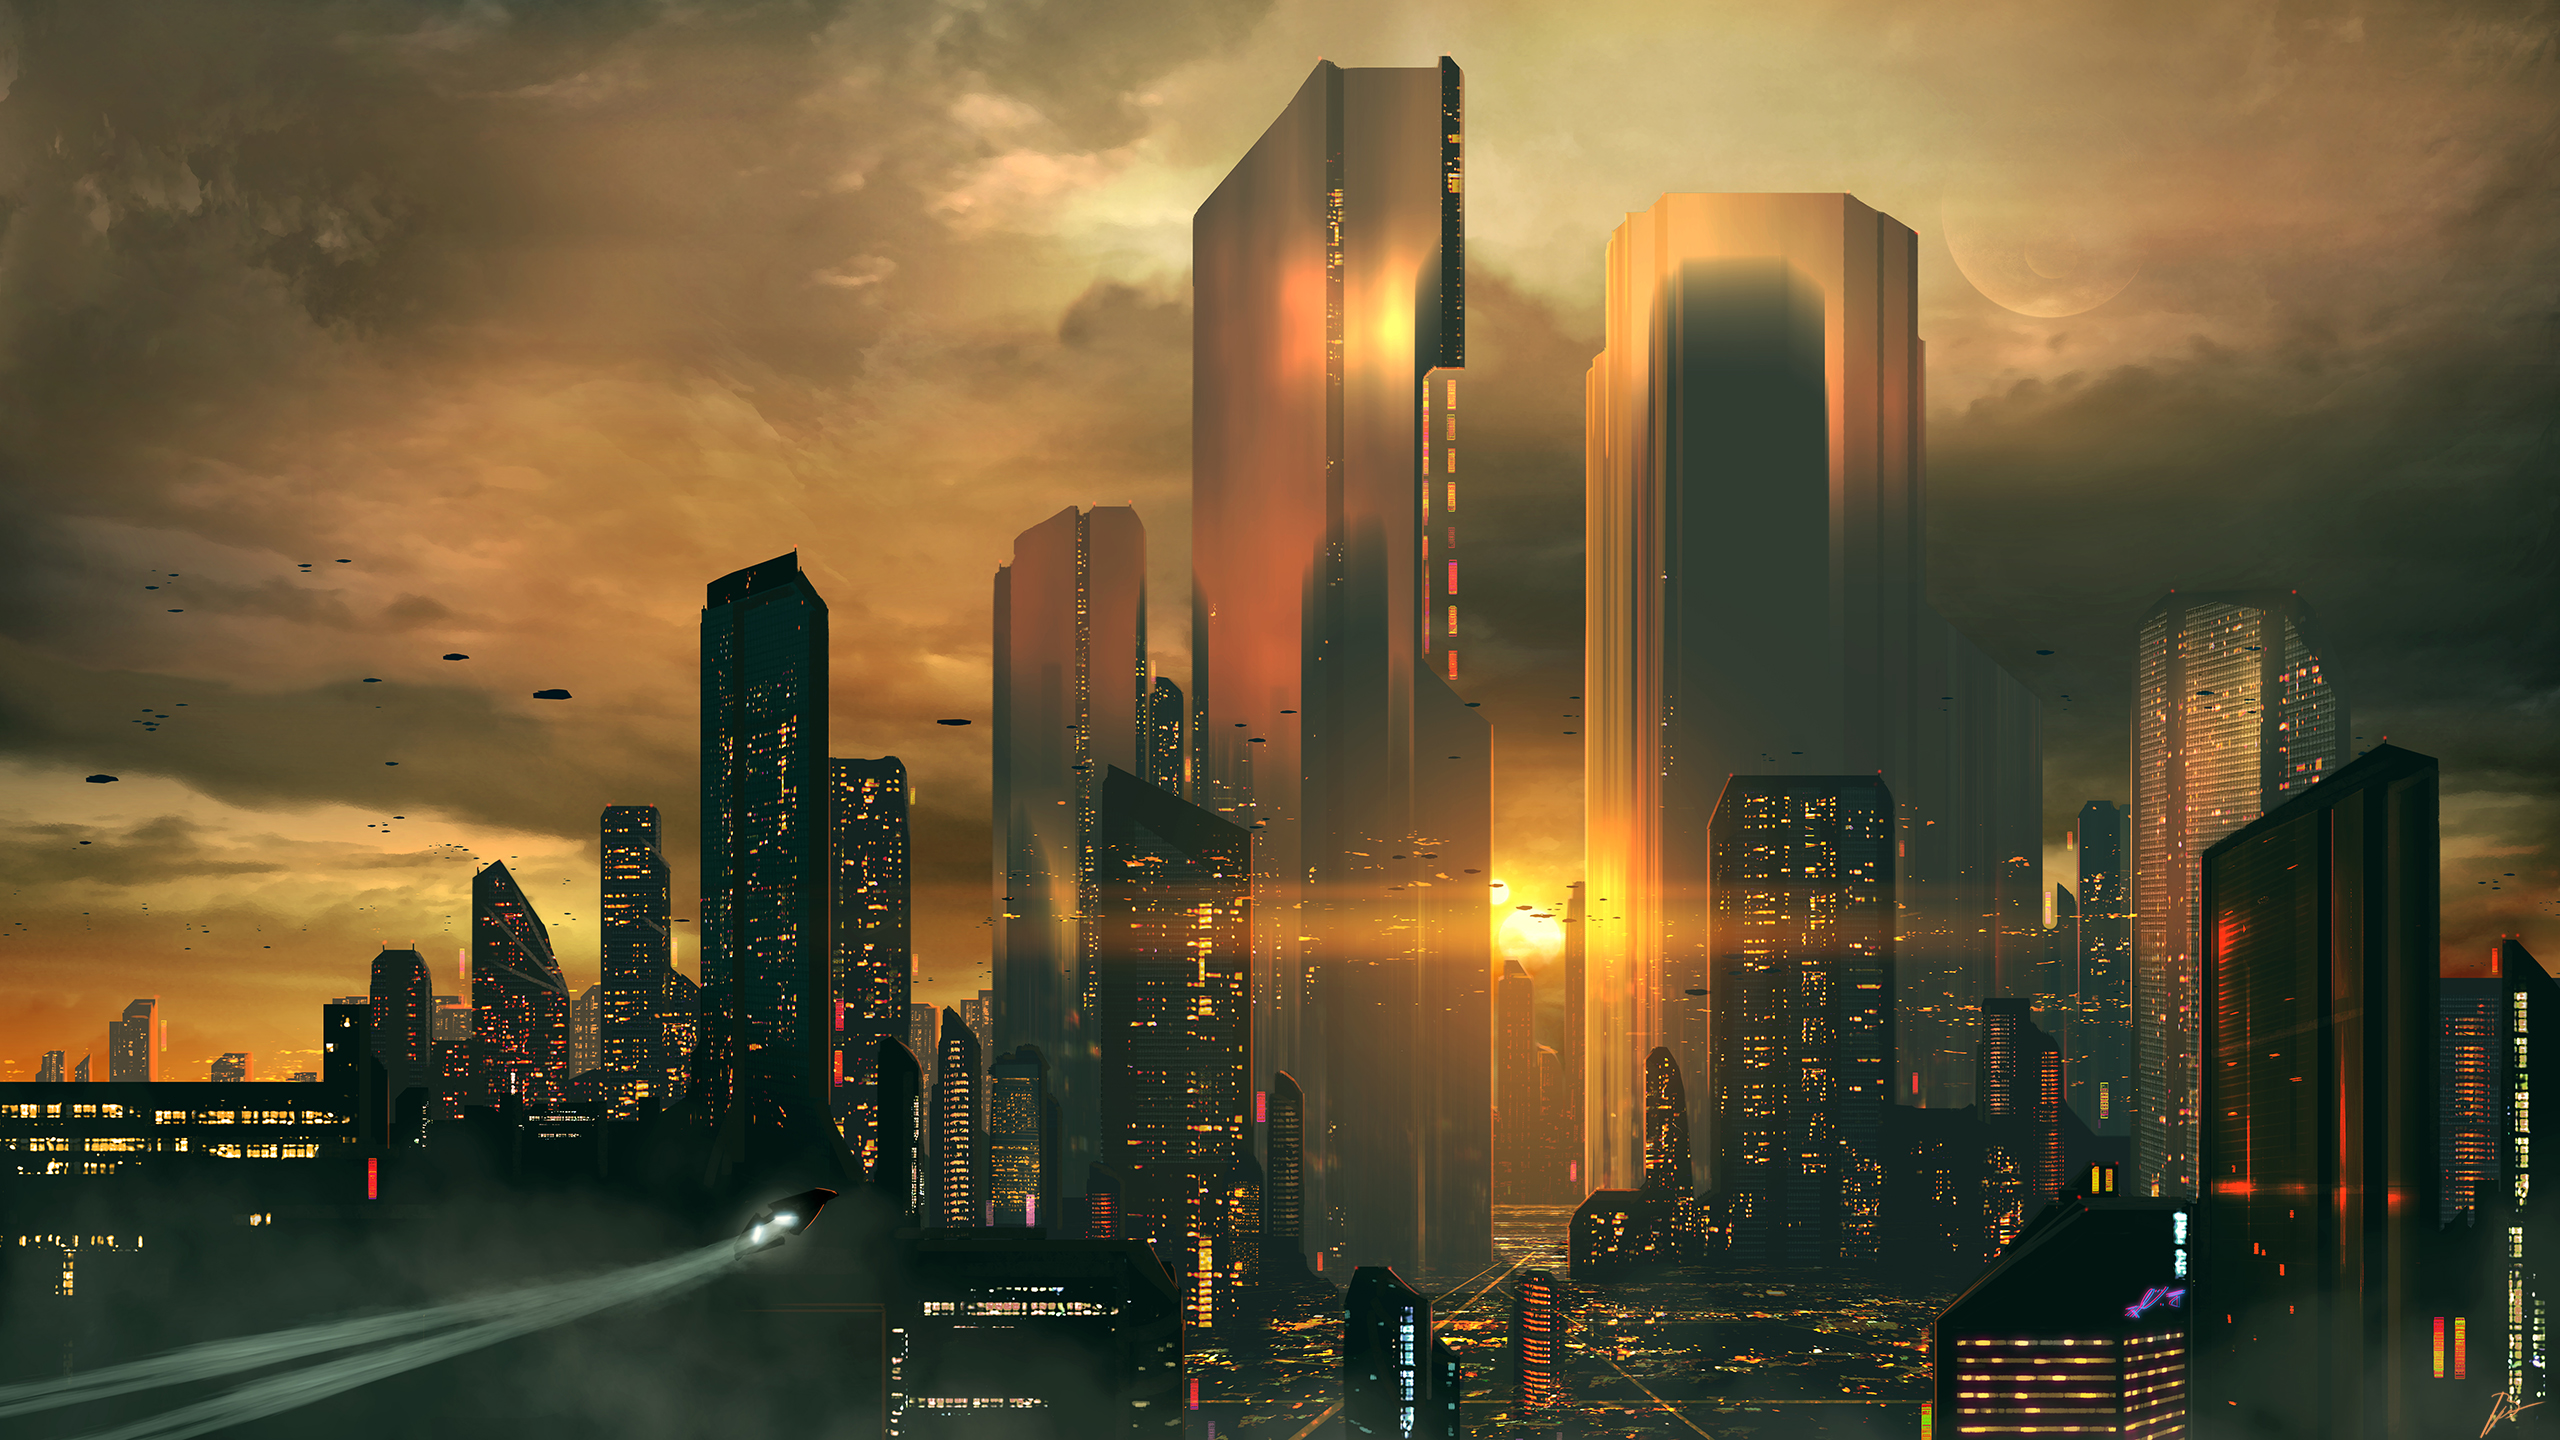 General 2560x1440 JoeyJazz futuristic science fiction sunset skyscraper cityscape